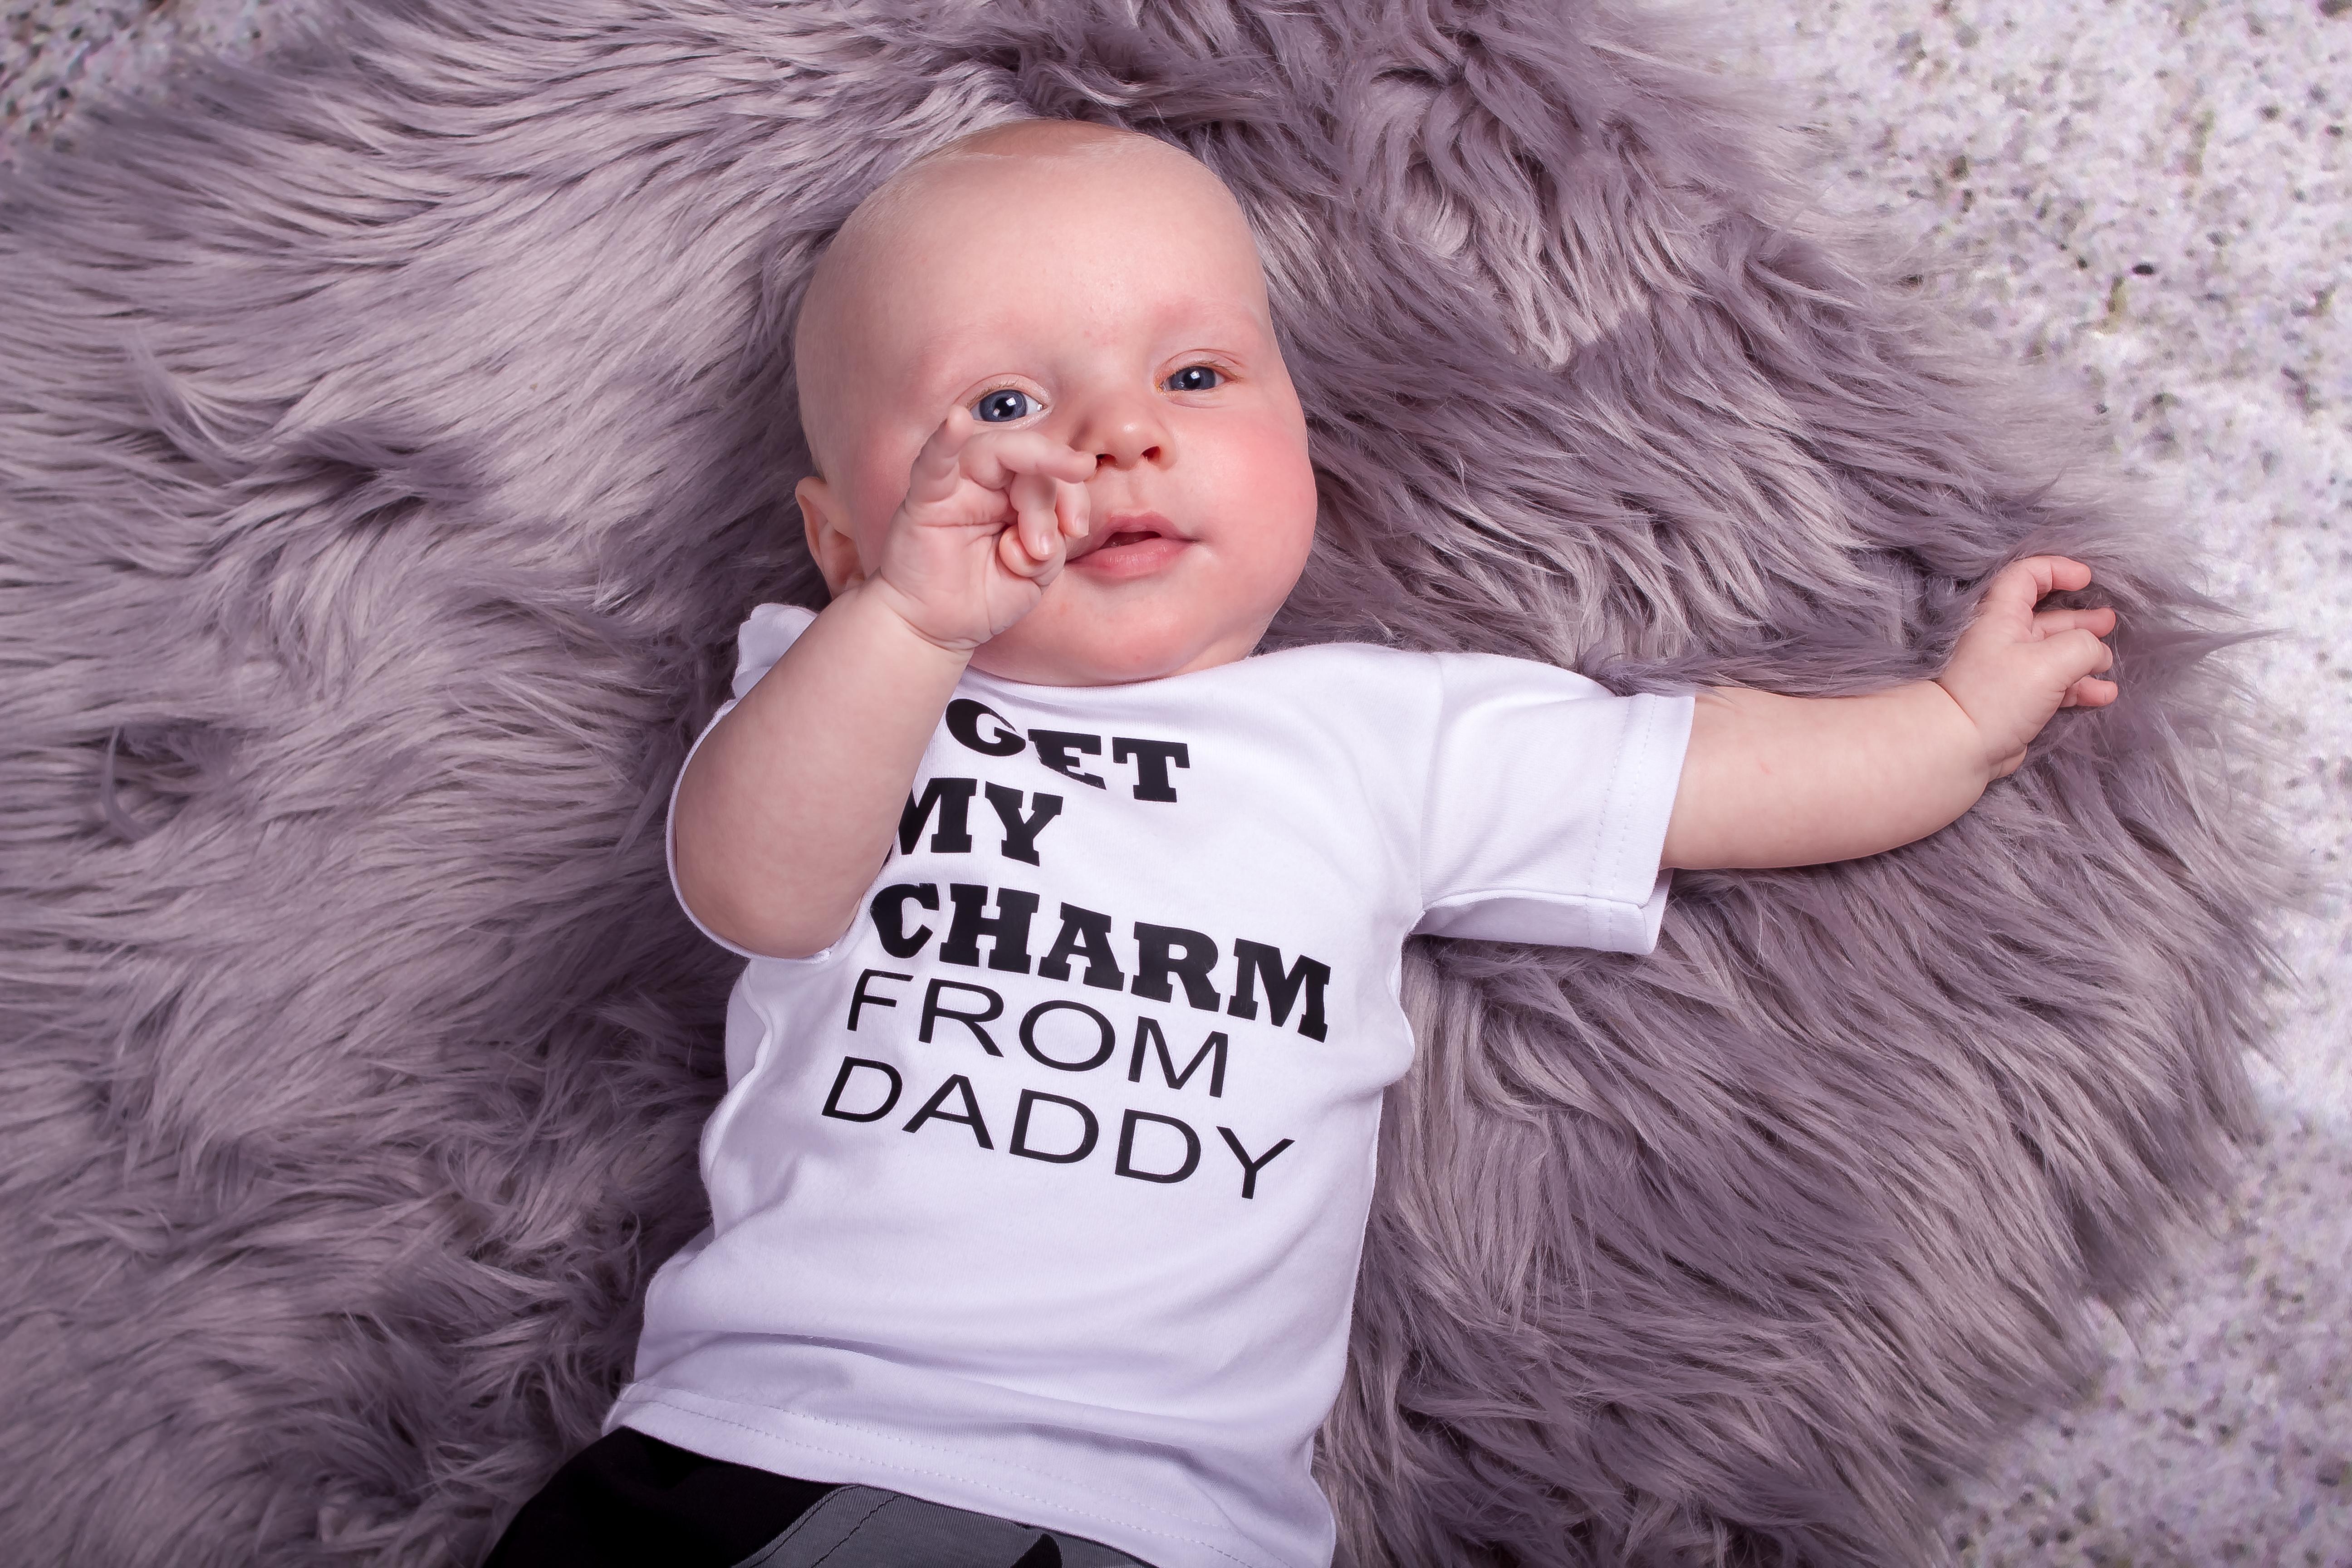 Shirt - I GET MY CHARM FROM DADDY